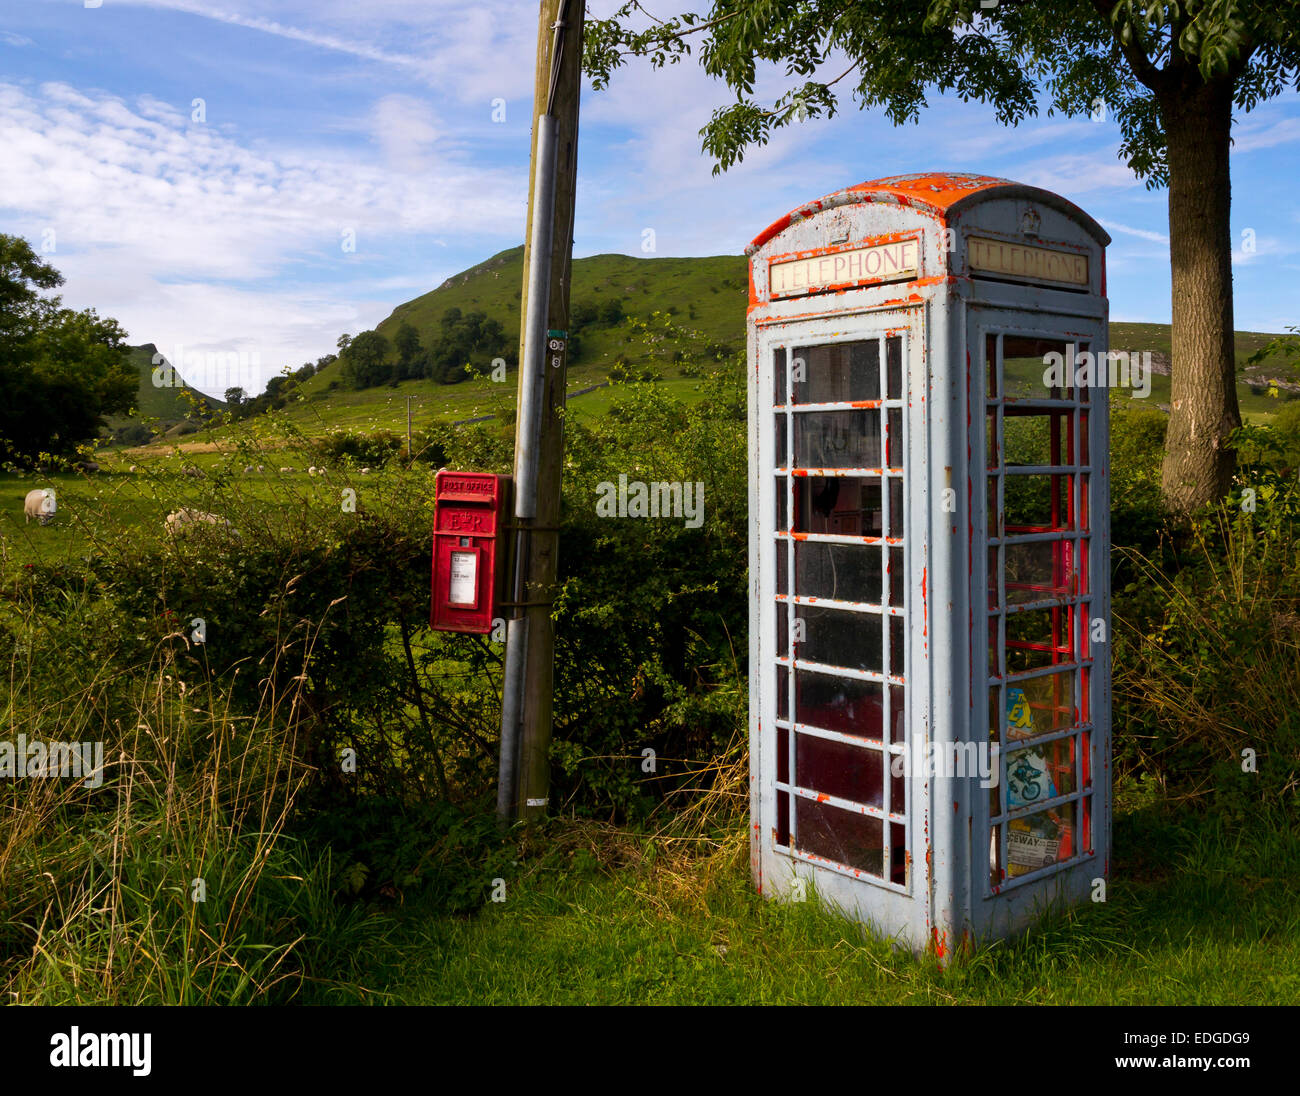 Old telephone kiosk and red letter box on telegraph pole at Glutton